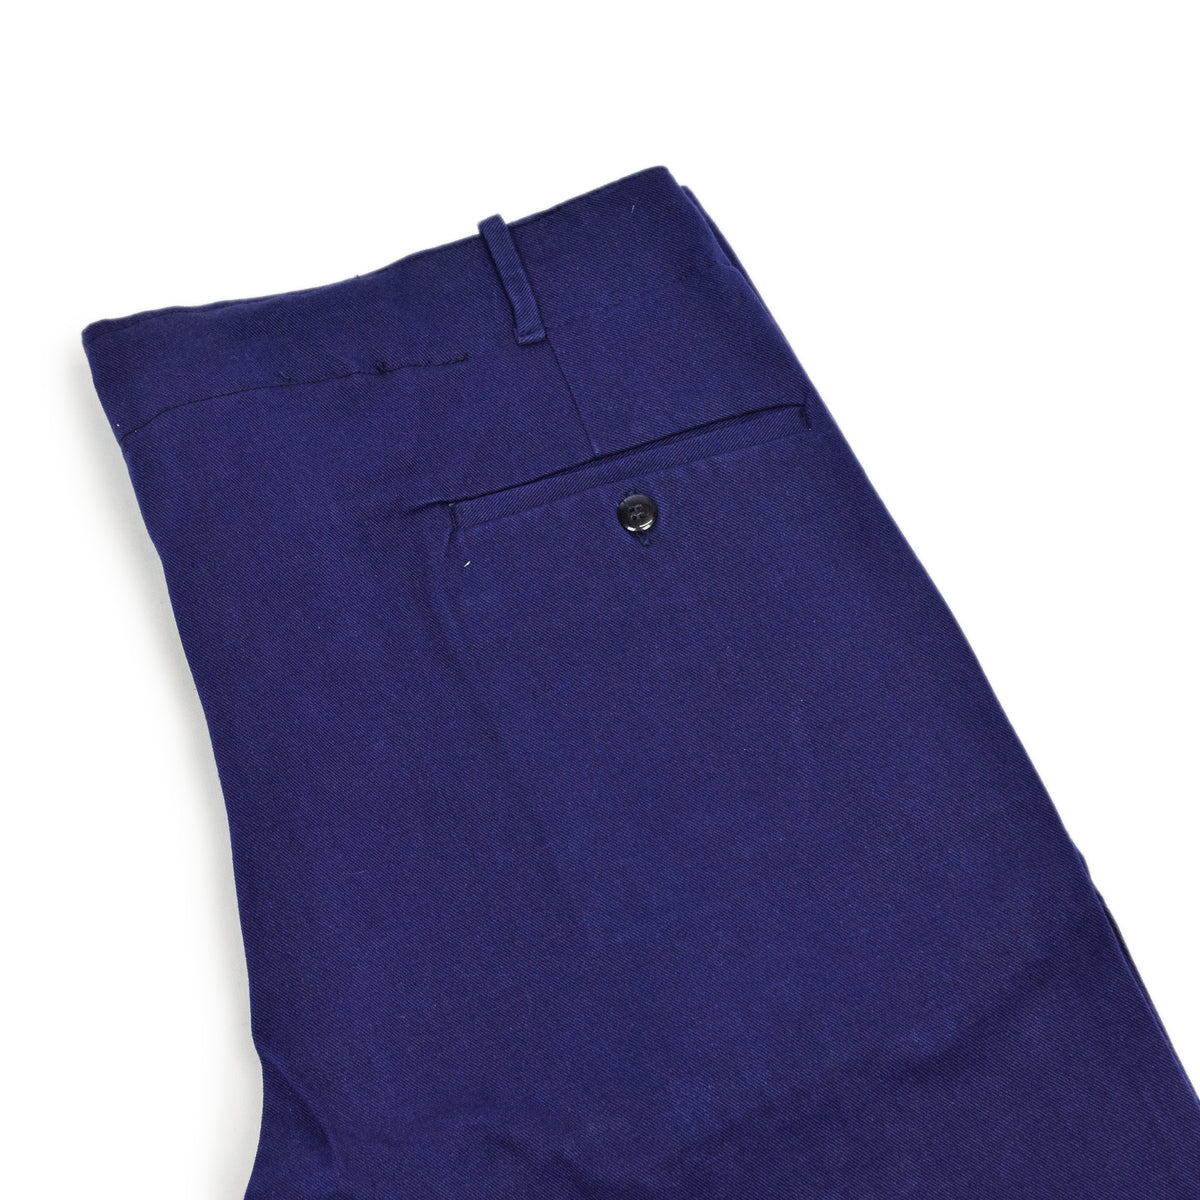 Vintage Workwear Blue French Style Work Utility Trousers Italy Made 36 W 28 L waist